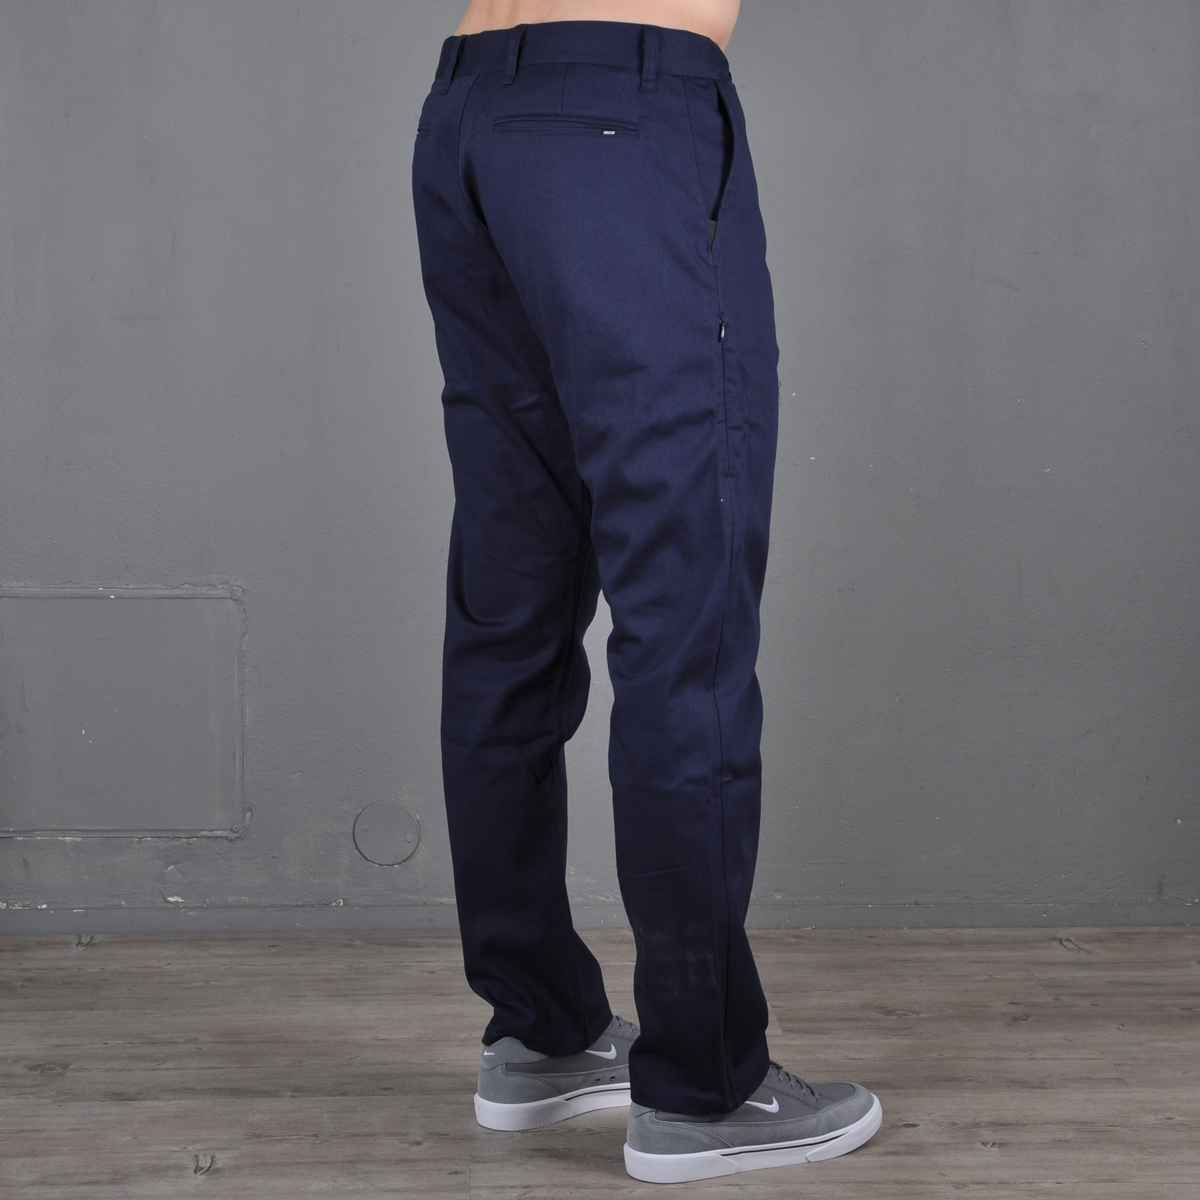 best loved a7168 c0f4a Nike SB FTM Chino pant, obsidian. 1